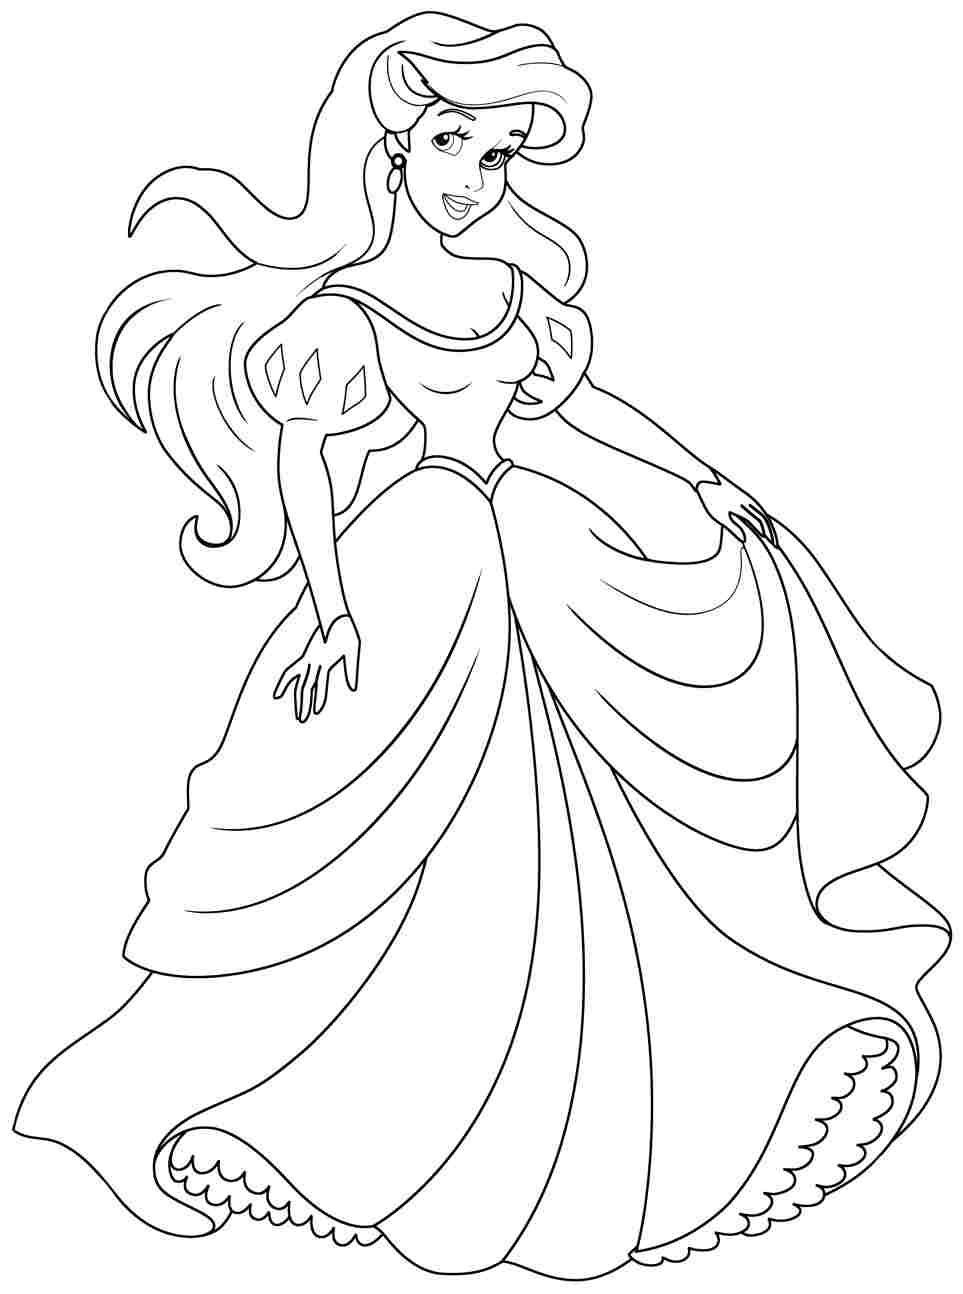 Ariel coloring pages to download and print for free for Little princess coloring pages